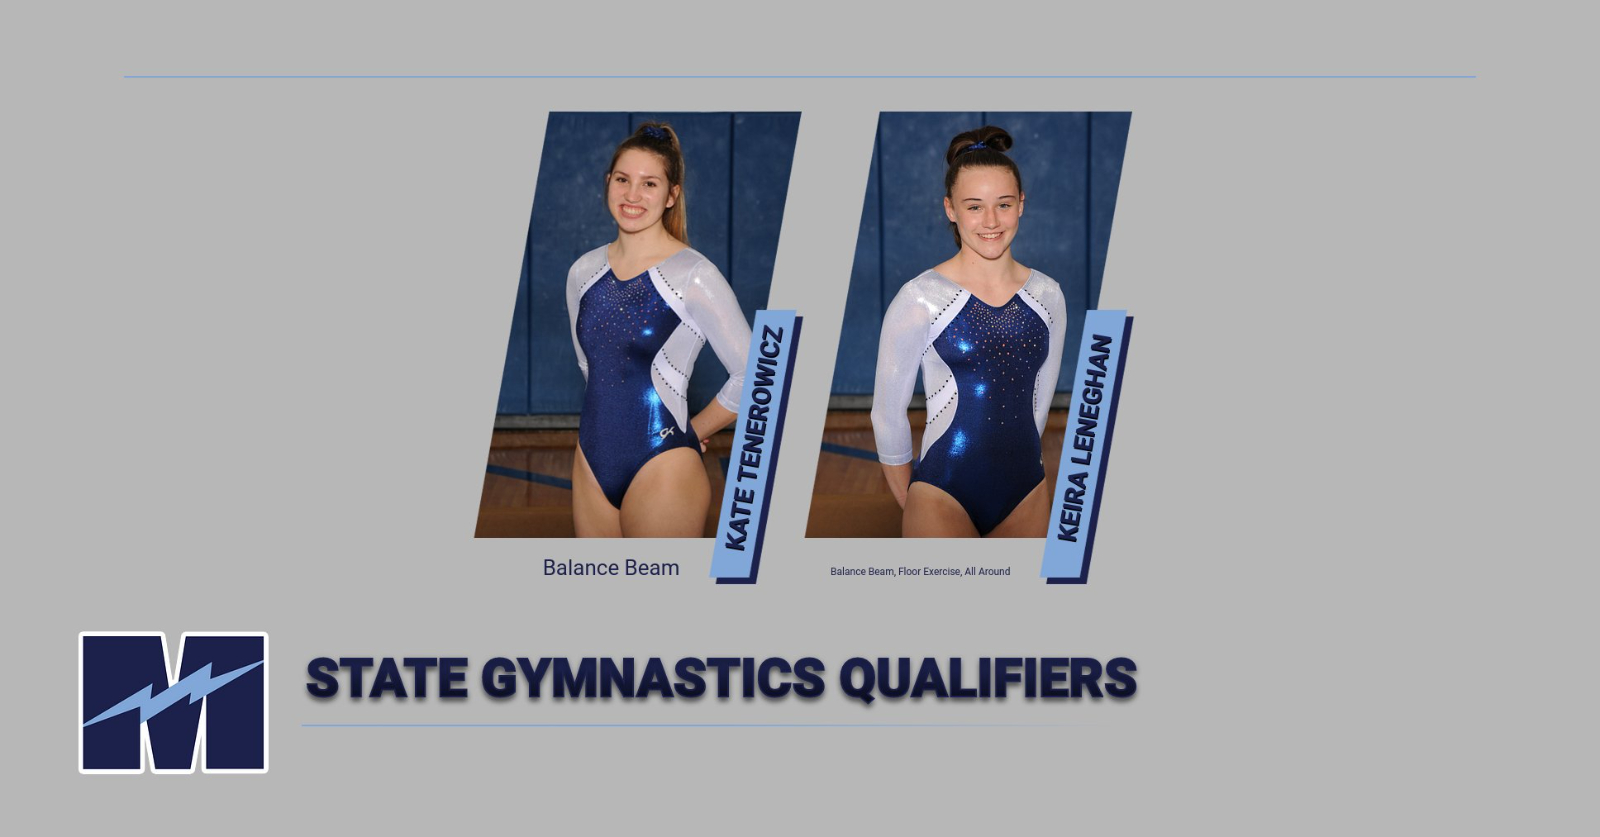 Leneghan & Tenerowicz Finish Strong At State Gymnastics Meet